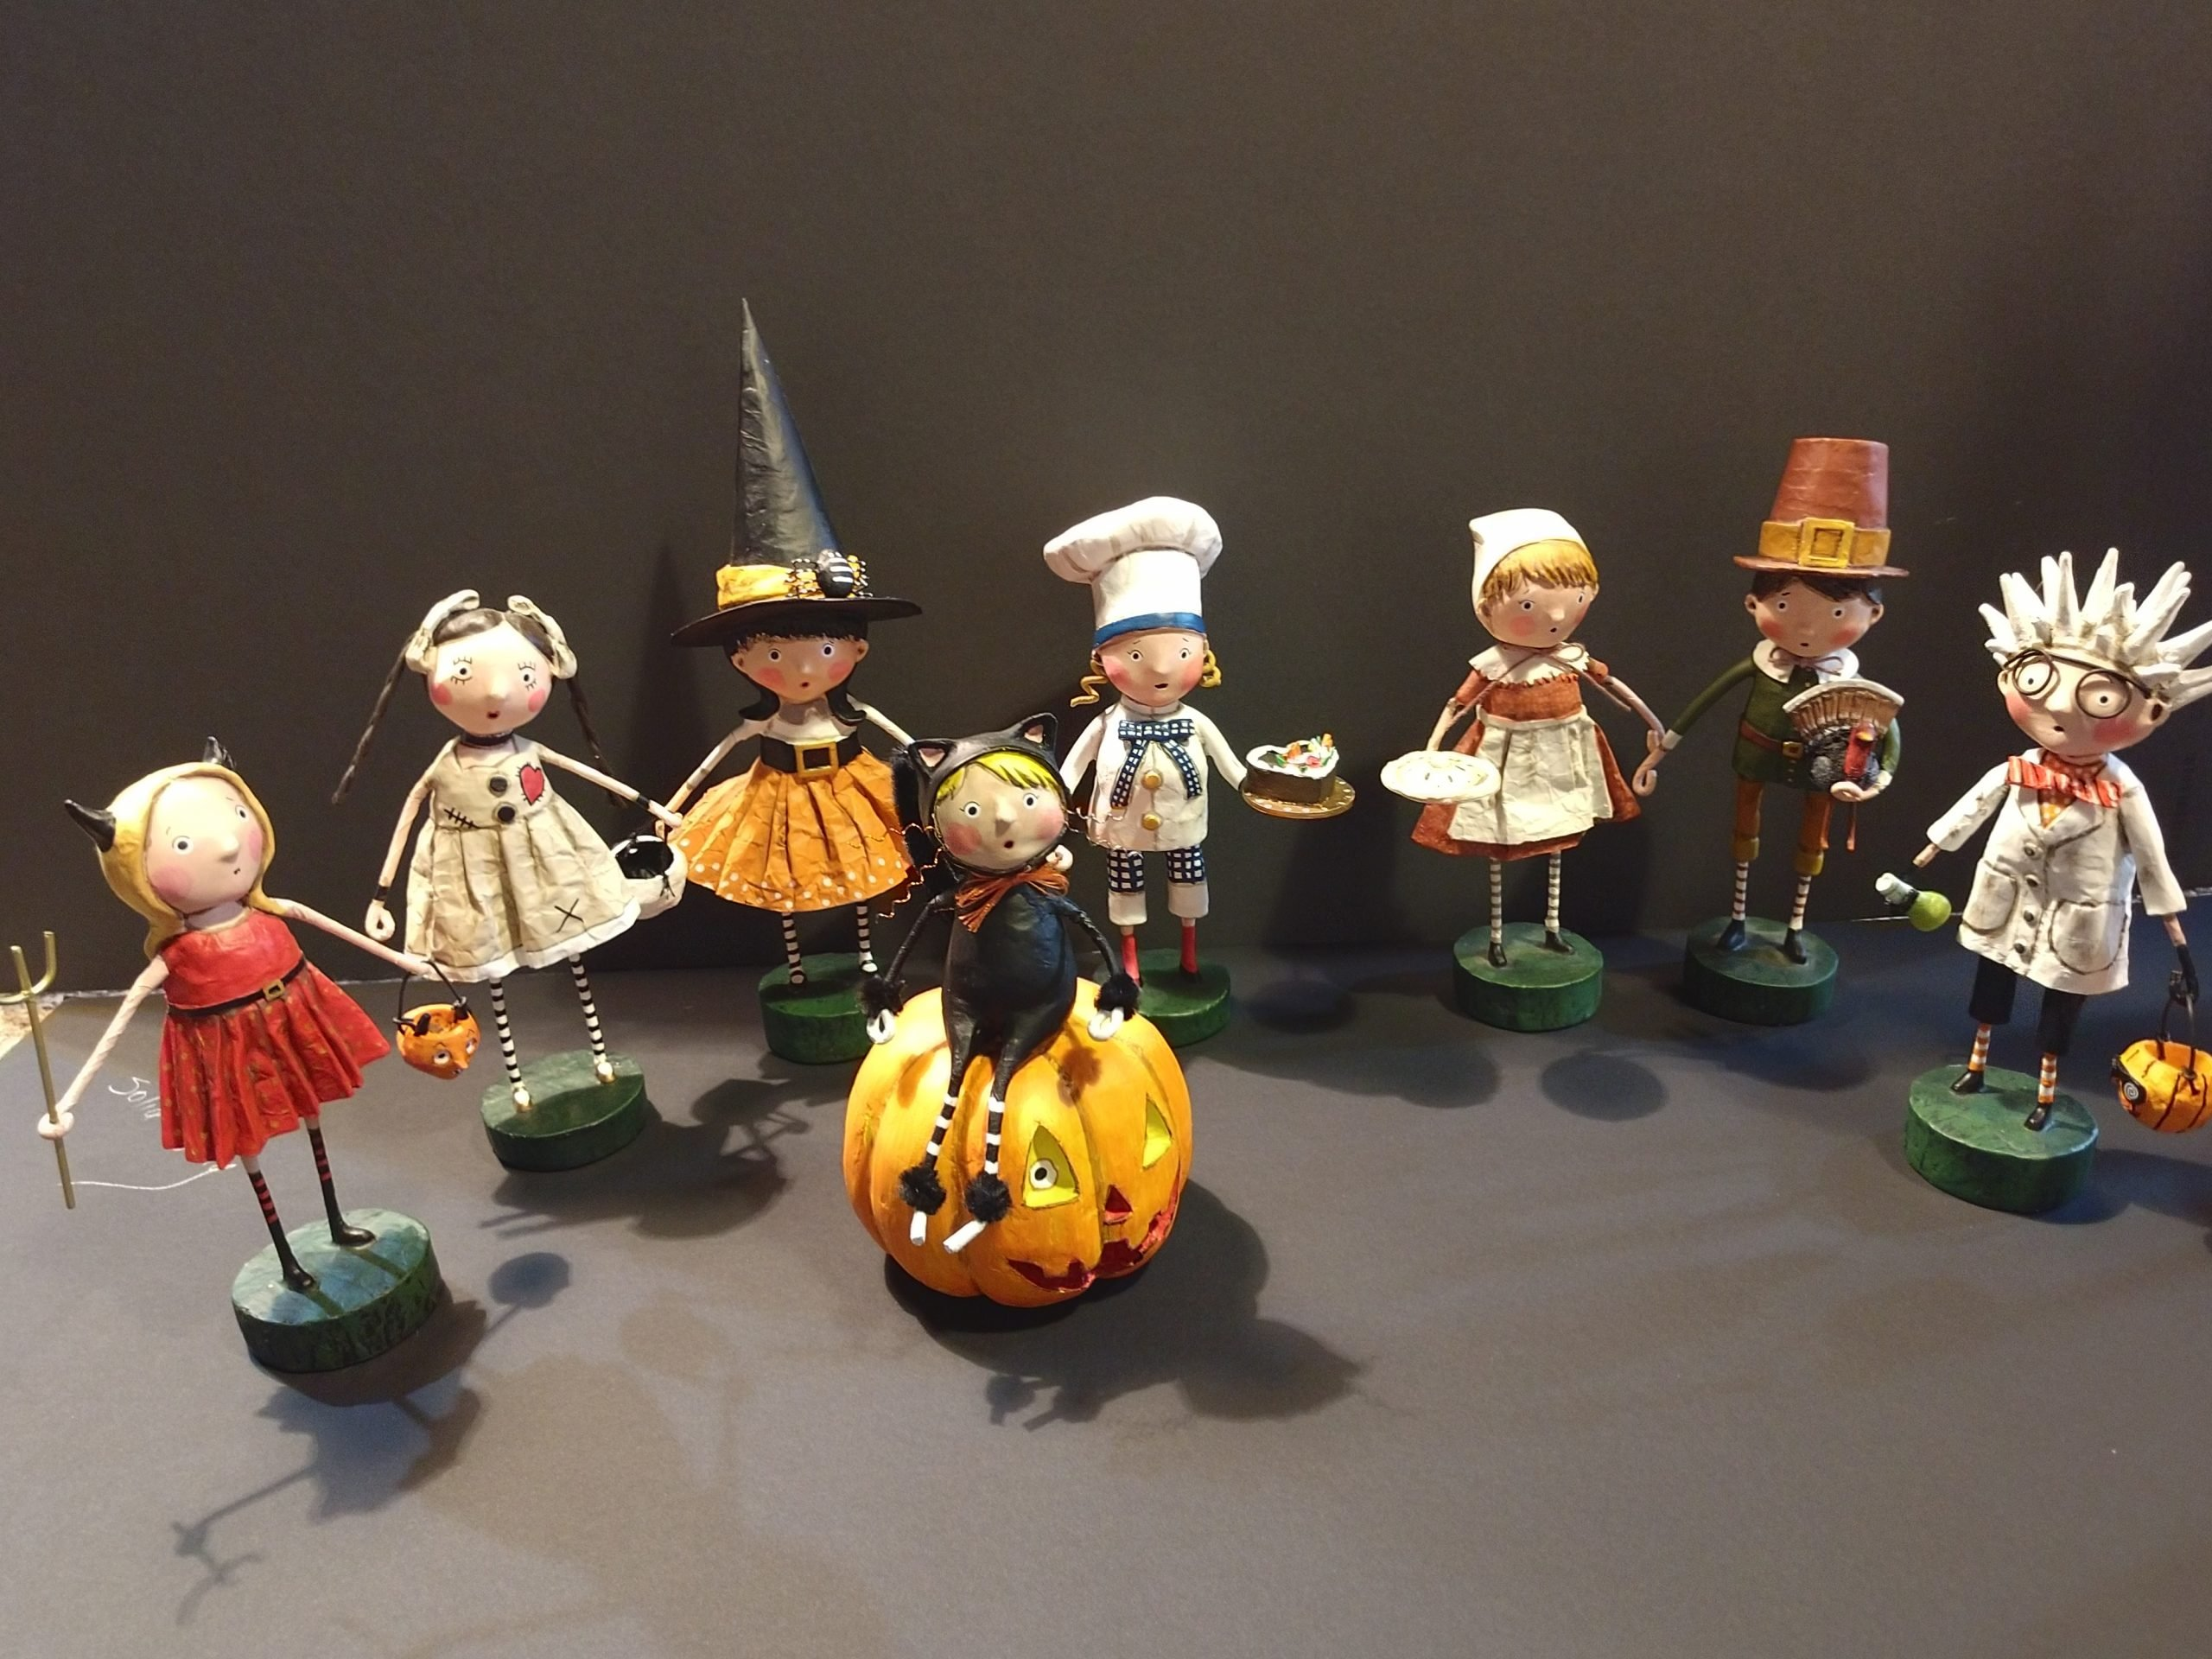 A new shipment of Lori Mitchell figures has just arrived!